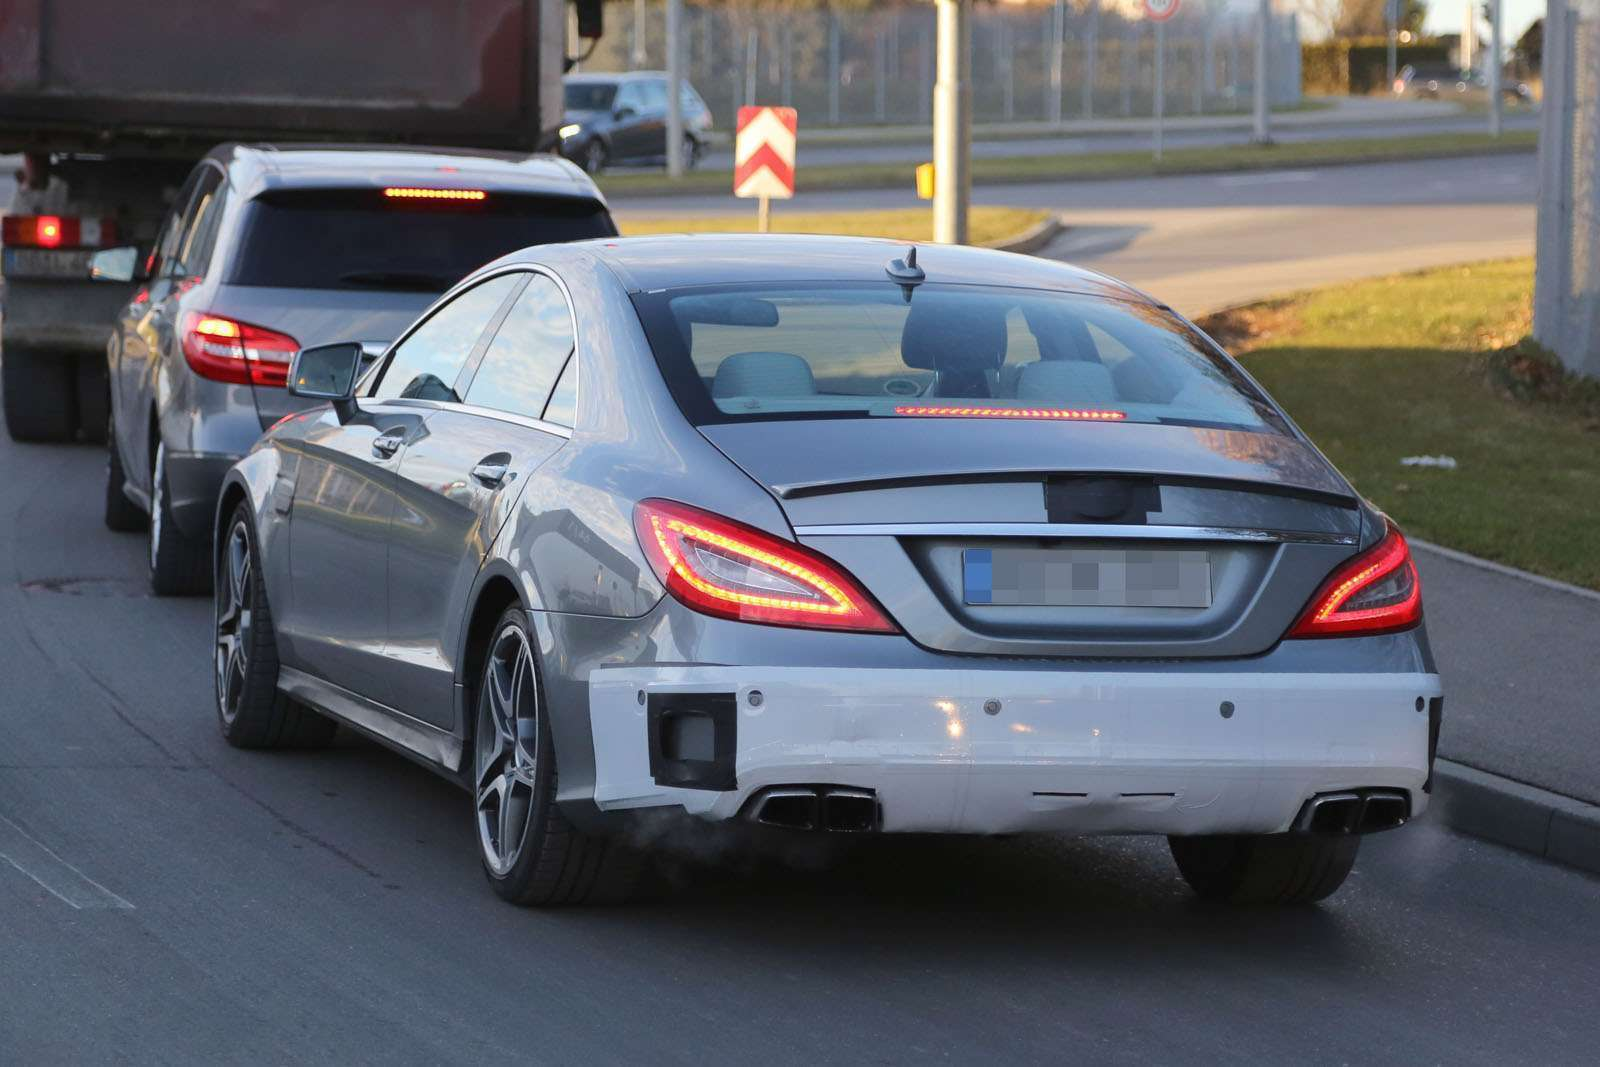 Mercedes CLS 63 AMG 2015 Spy Photos